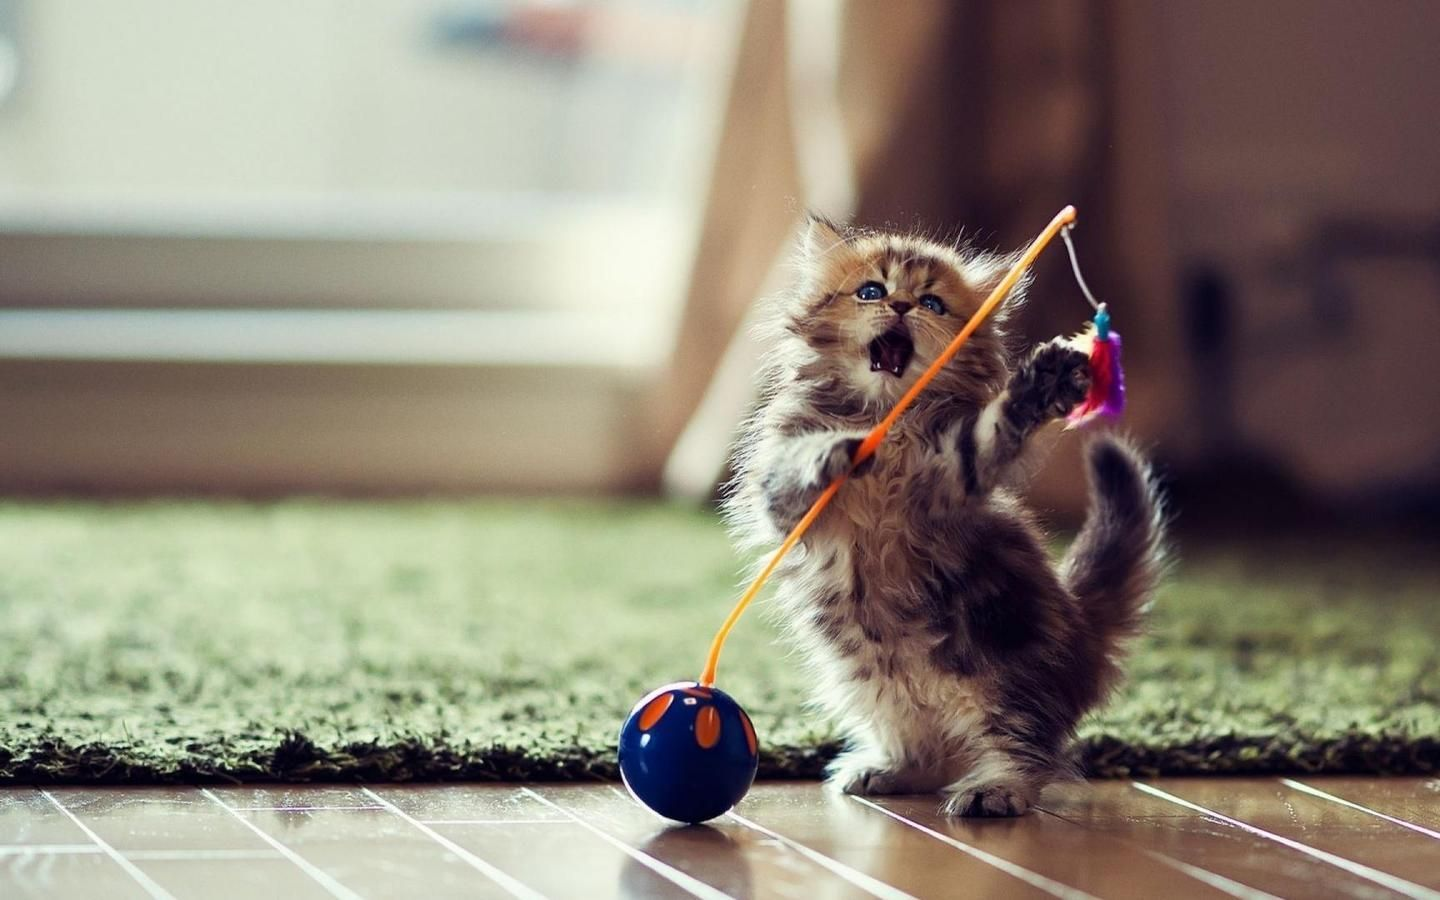 Cute Kitten Playing With Ball Aww Cute